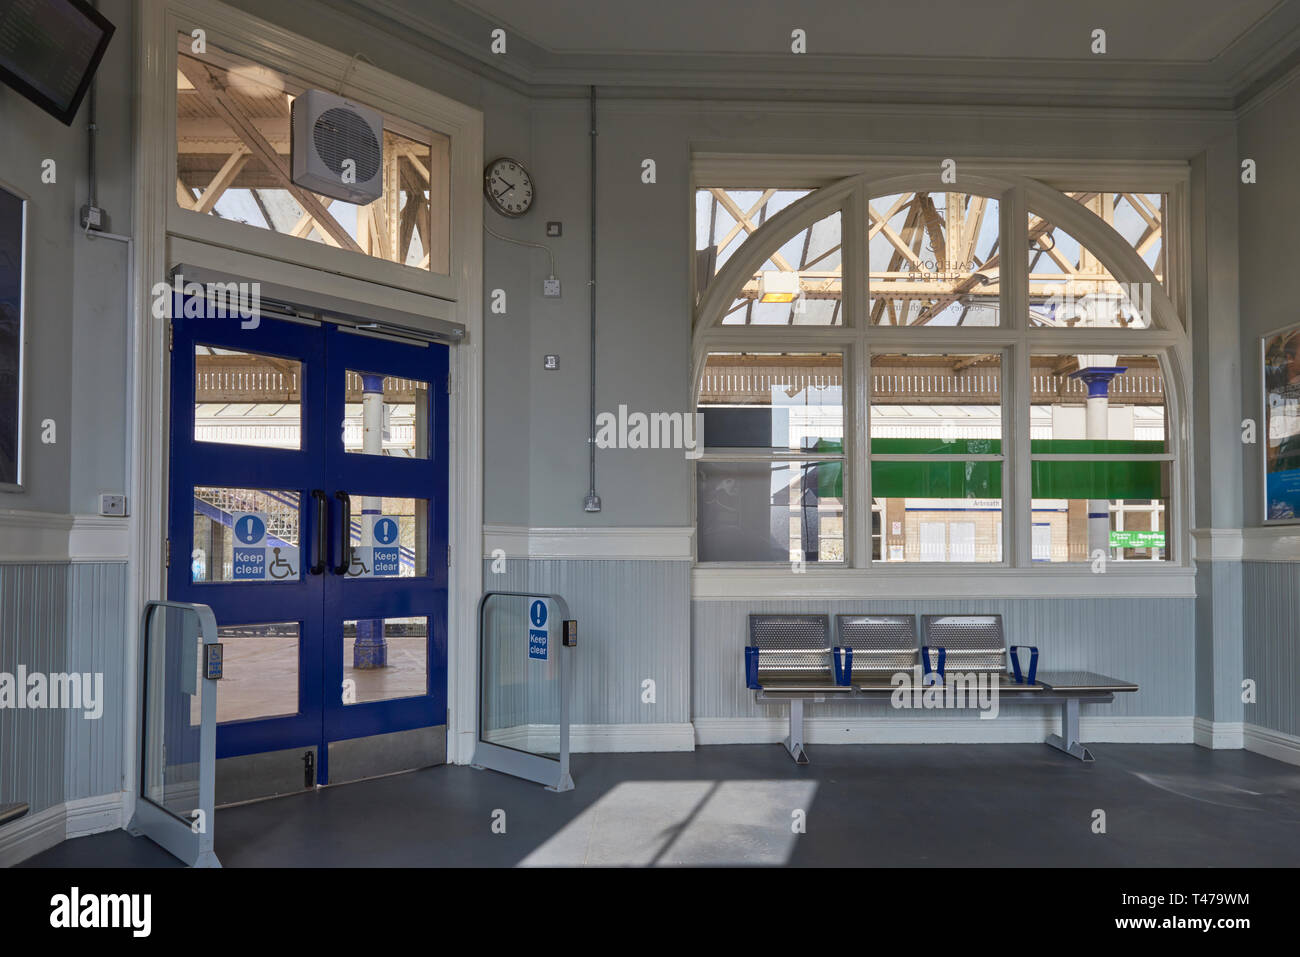 The Waiting Room at Arbroath Station on one Spring Day in April, with its stainless steel seating and disability friendly automatic doors. Angus, Scot - Stock Image